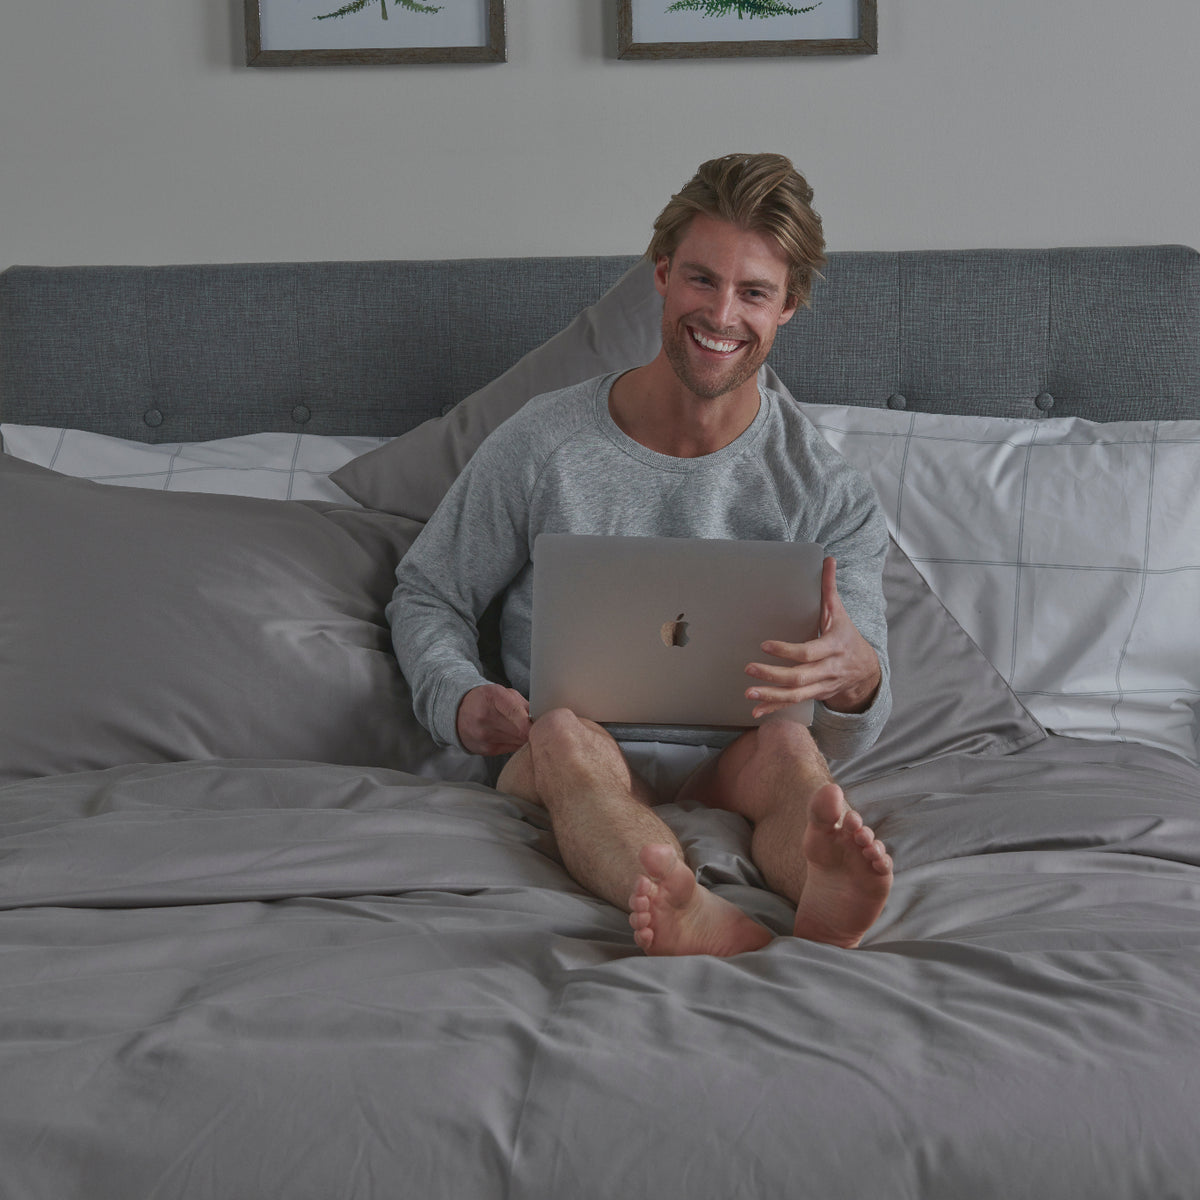 Man Sitting on Bed with Mac Laptop